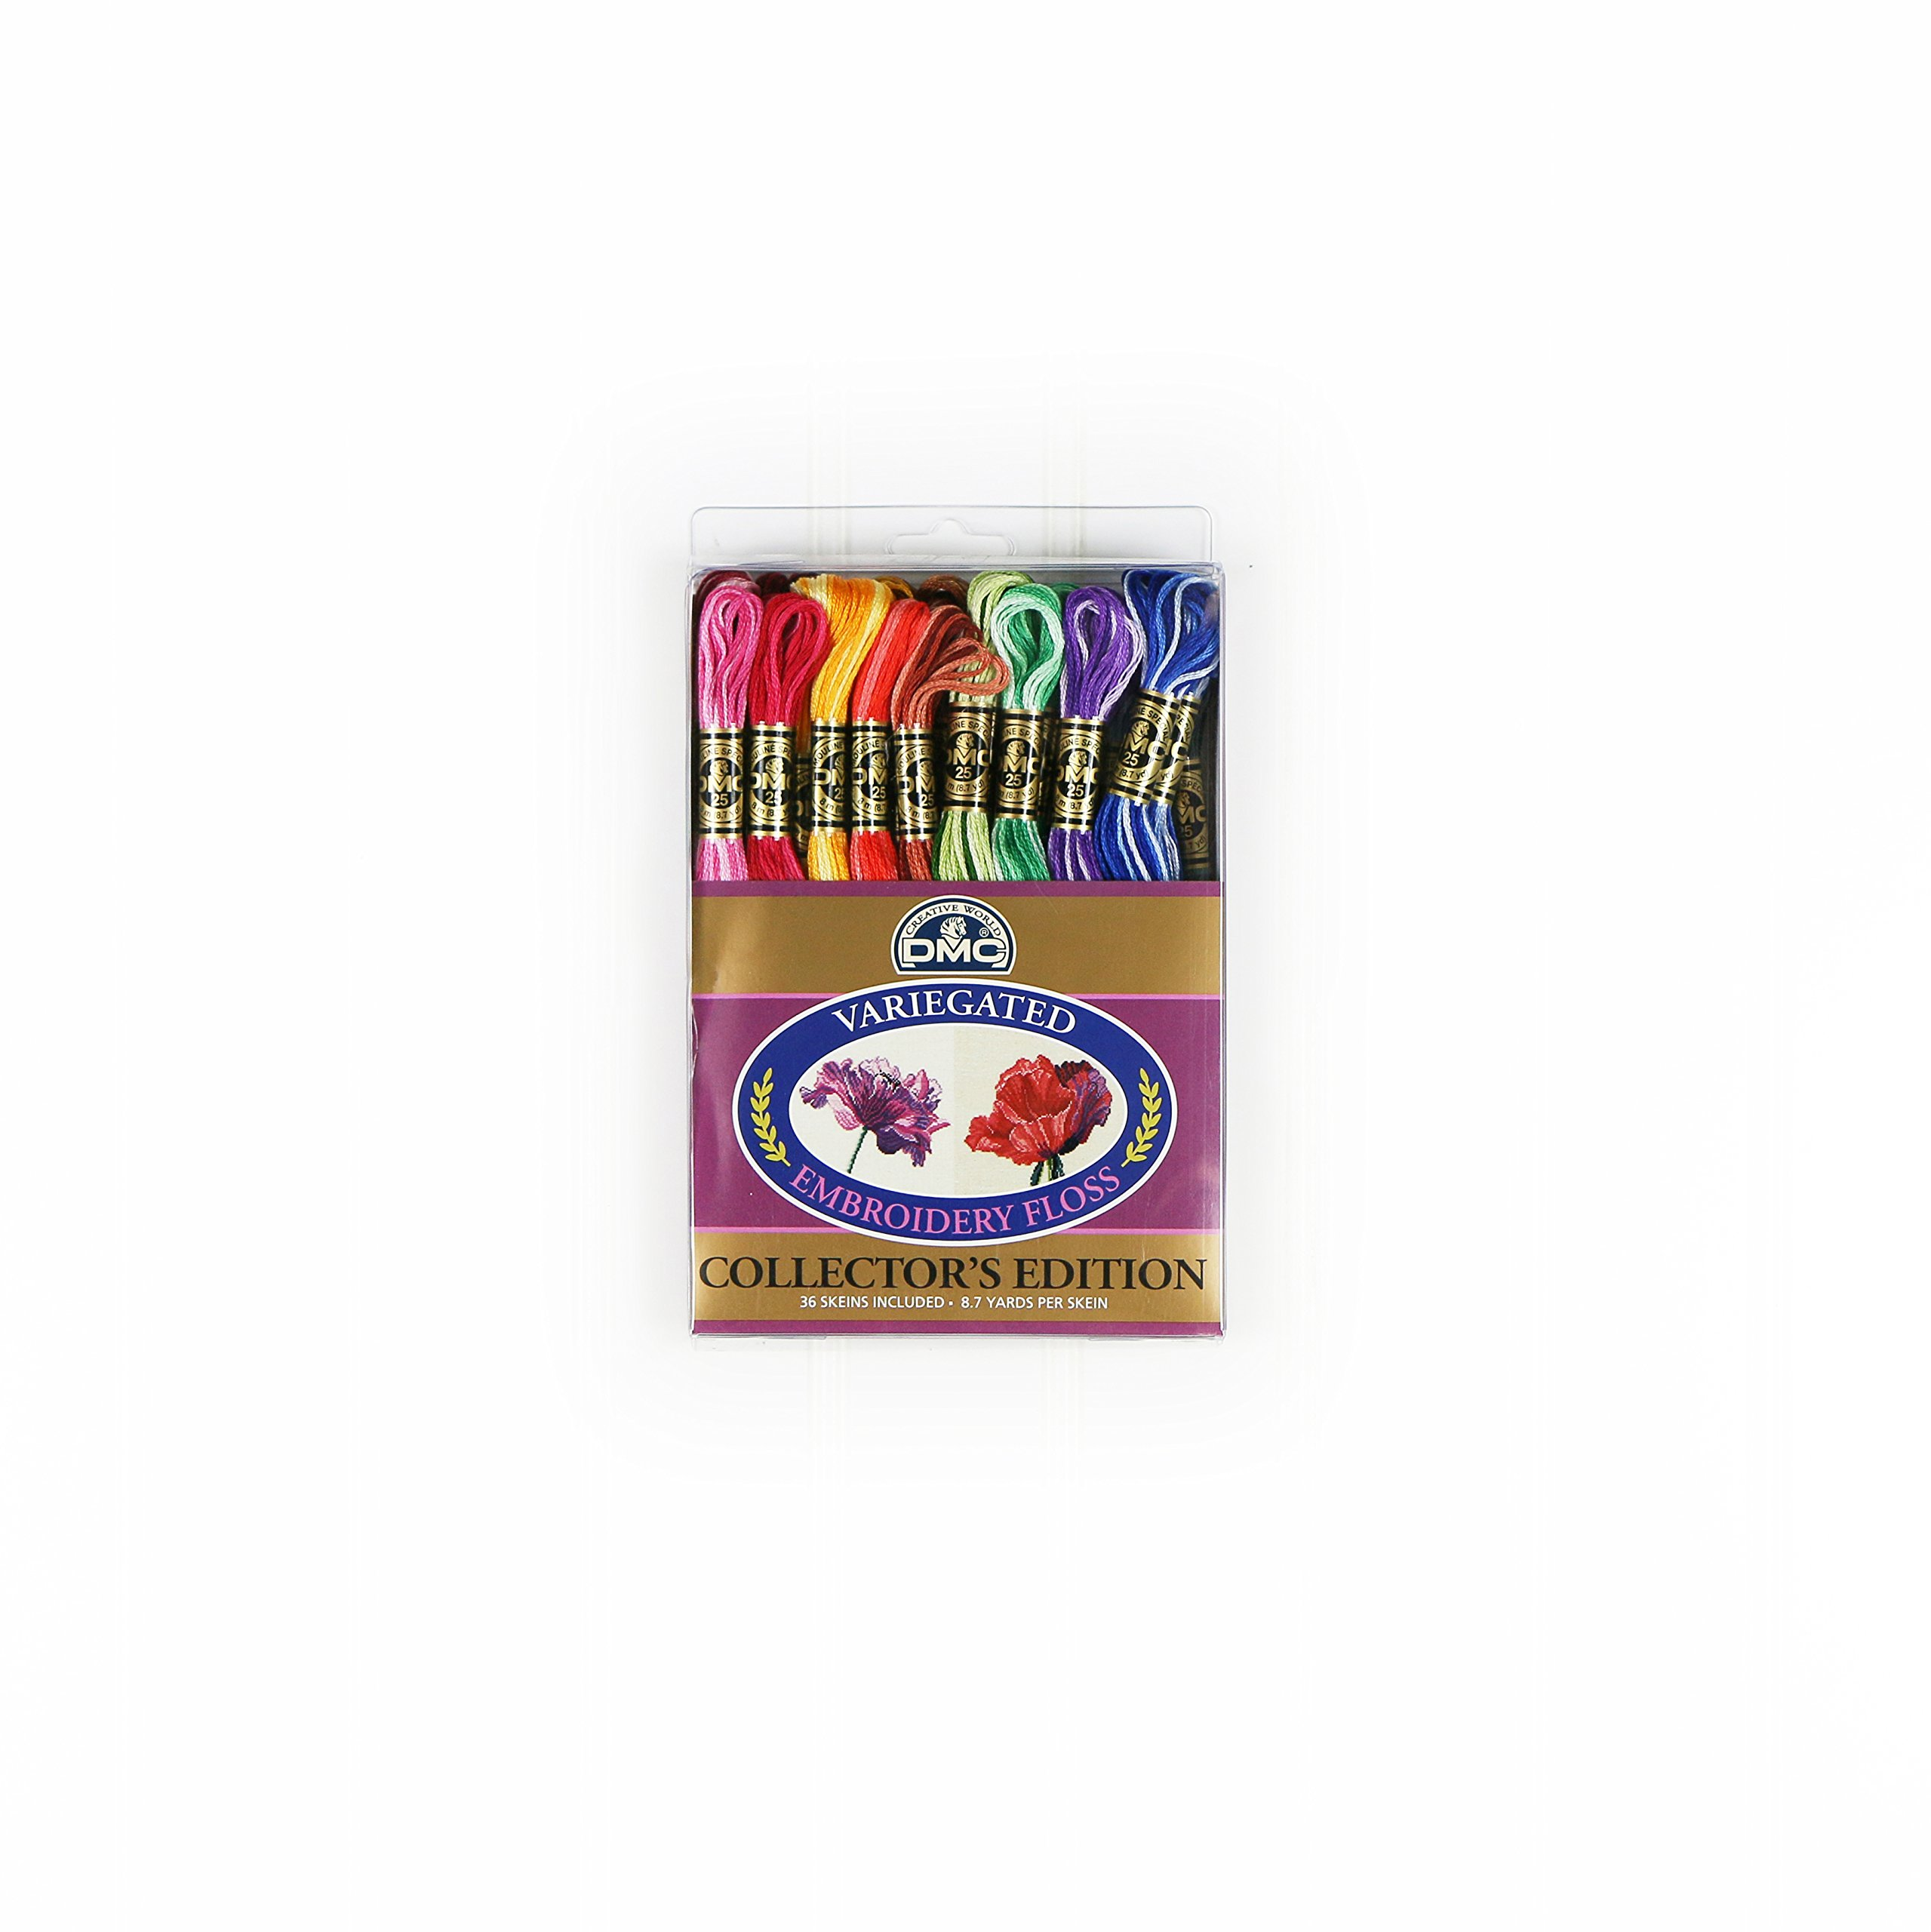 DMC F25PK36 Variegated Embroidery Floss, Assorted, 36-Pack by DMC